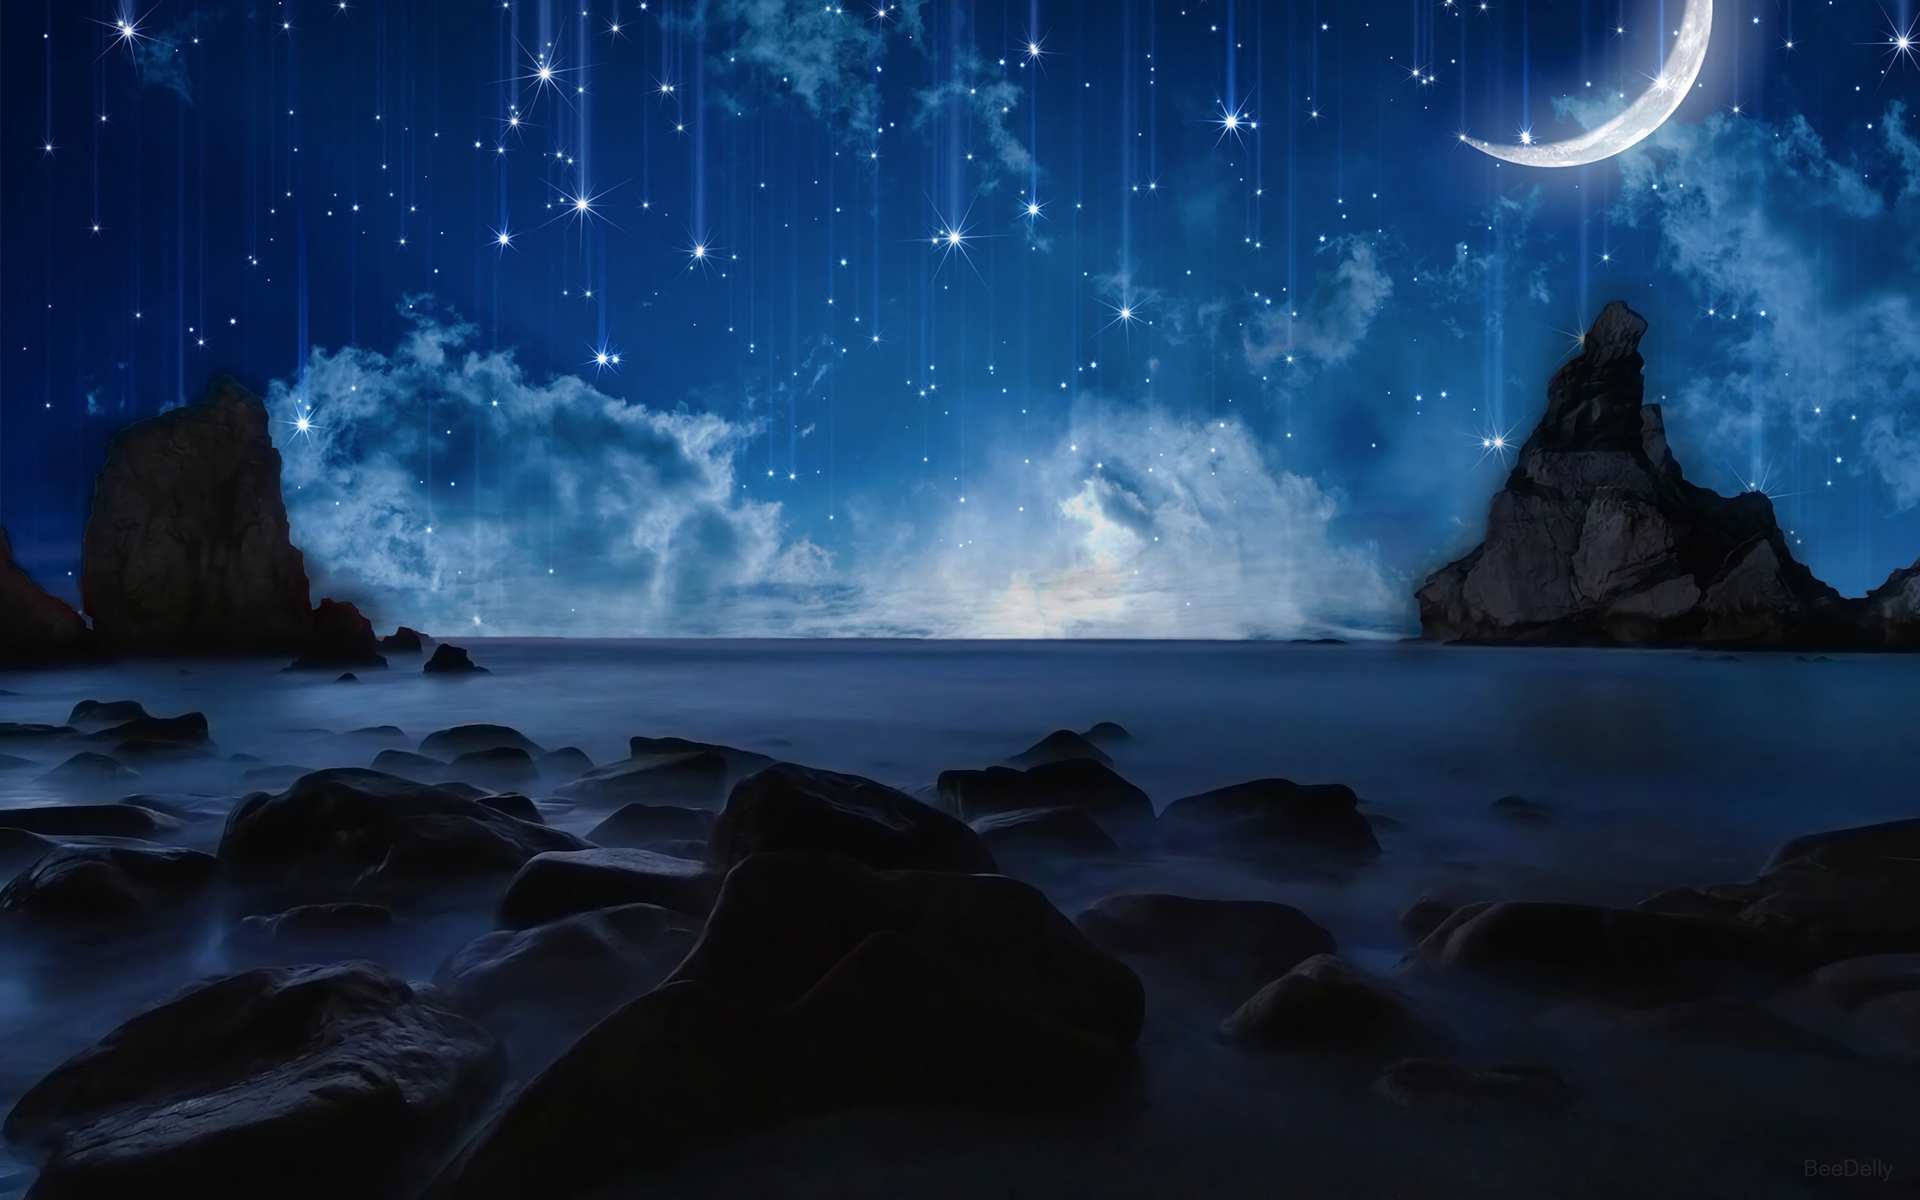 Artistic - Ocean Artistic Space Rock Star Moon Sky Wallpaper - Moon And Star PNG HD